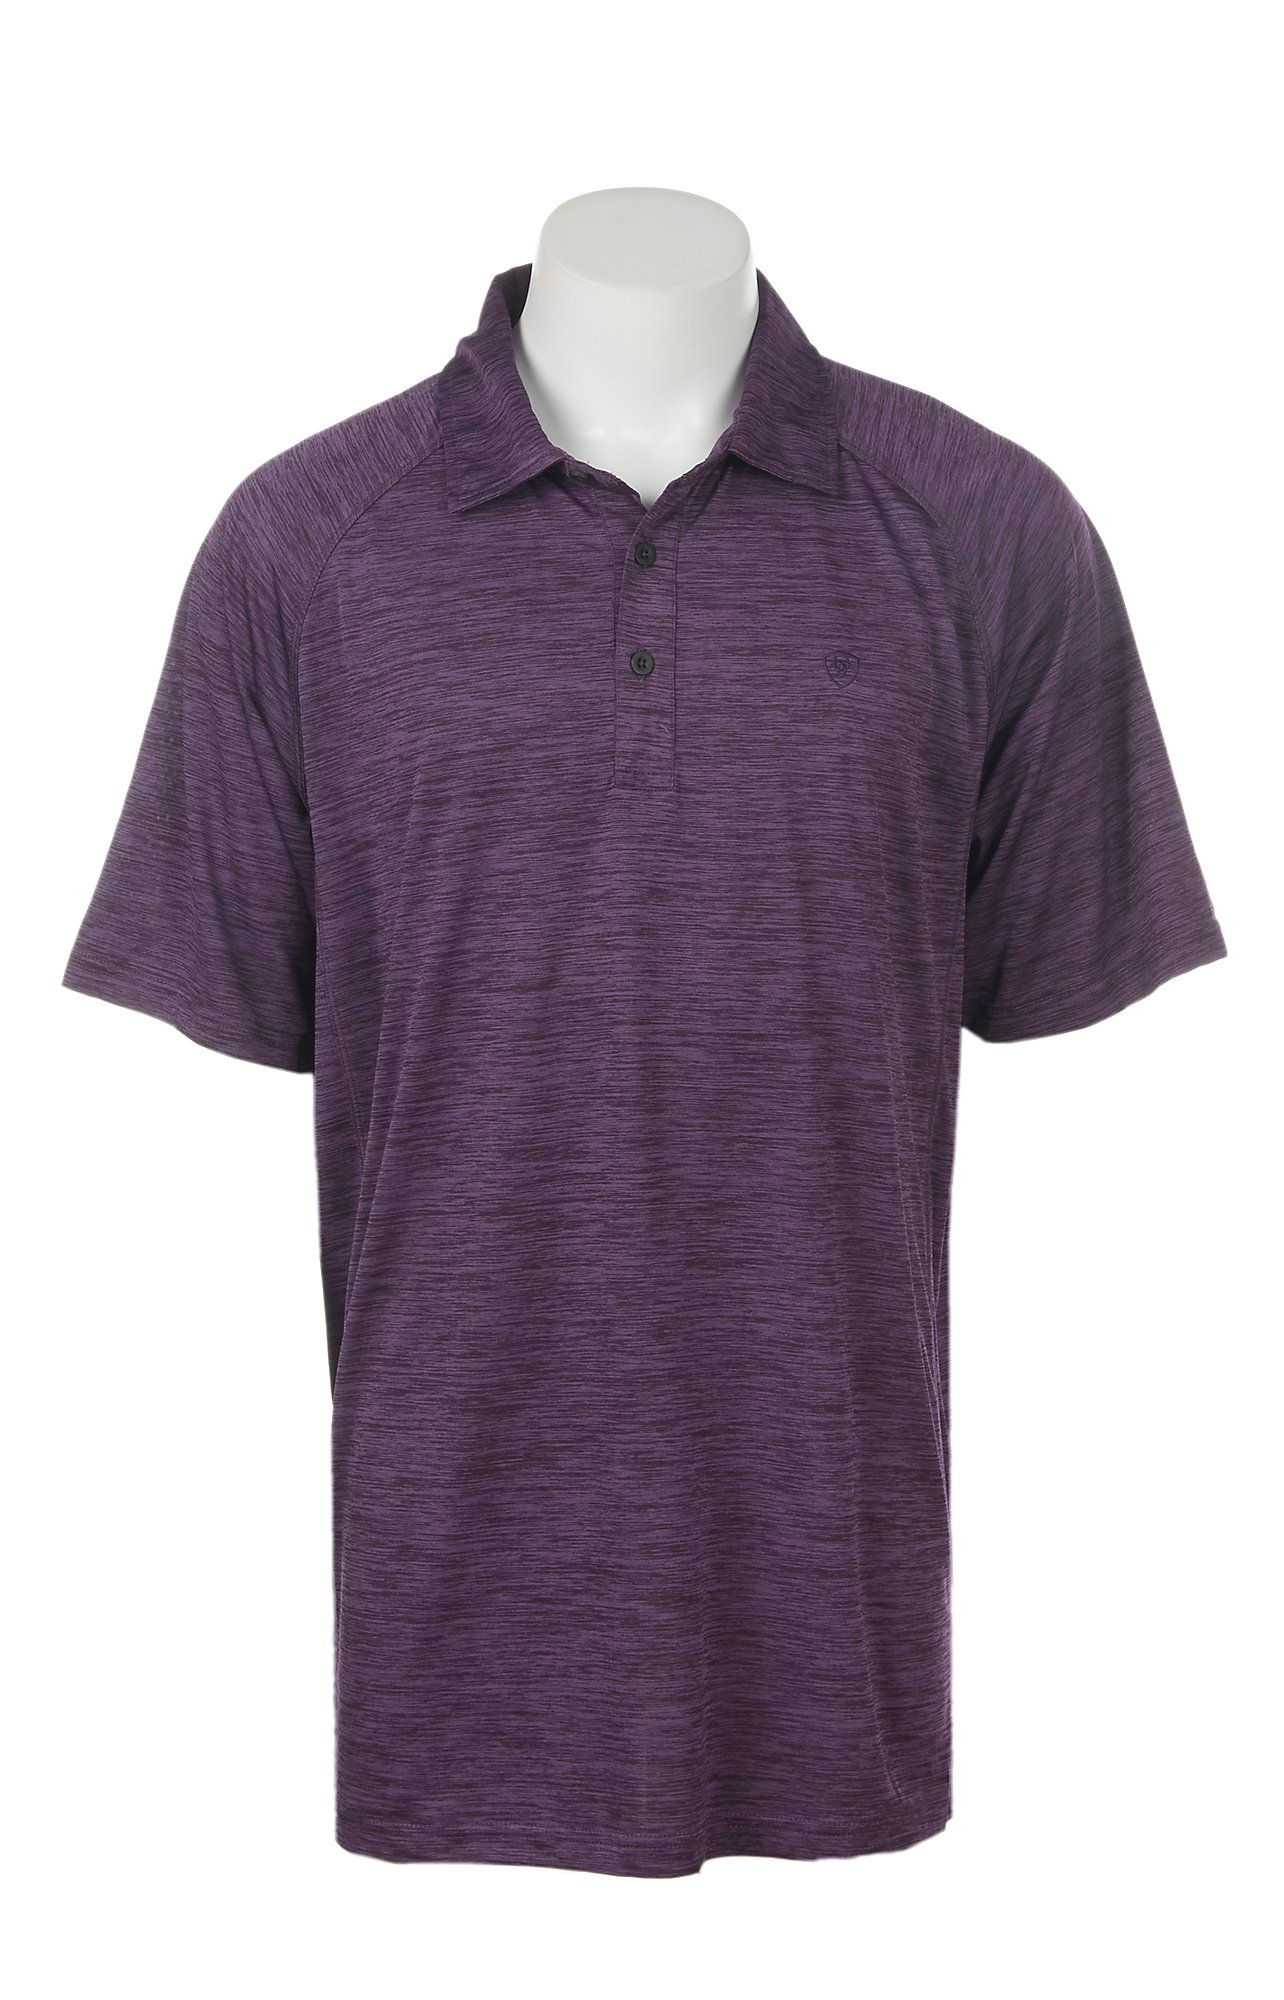 Ariat Mens Charger Purple Pennant Heat Series Tek Polo Shirt